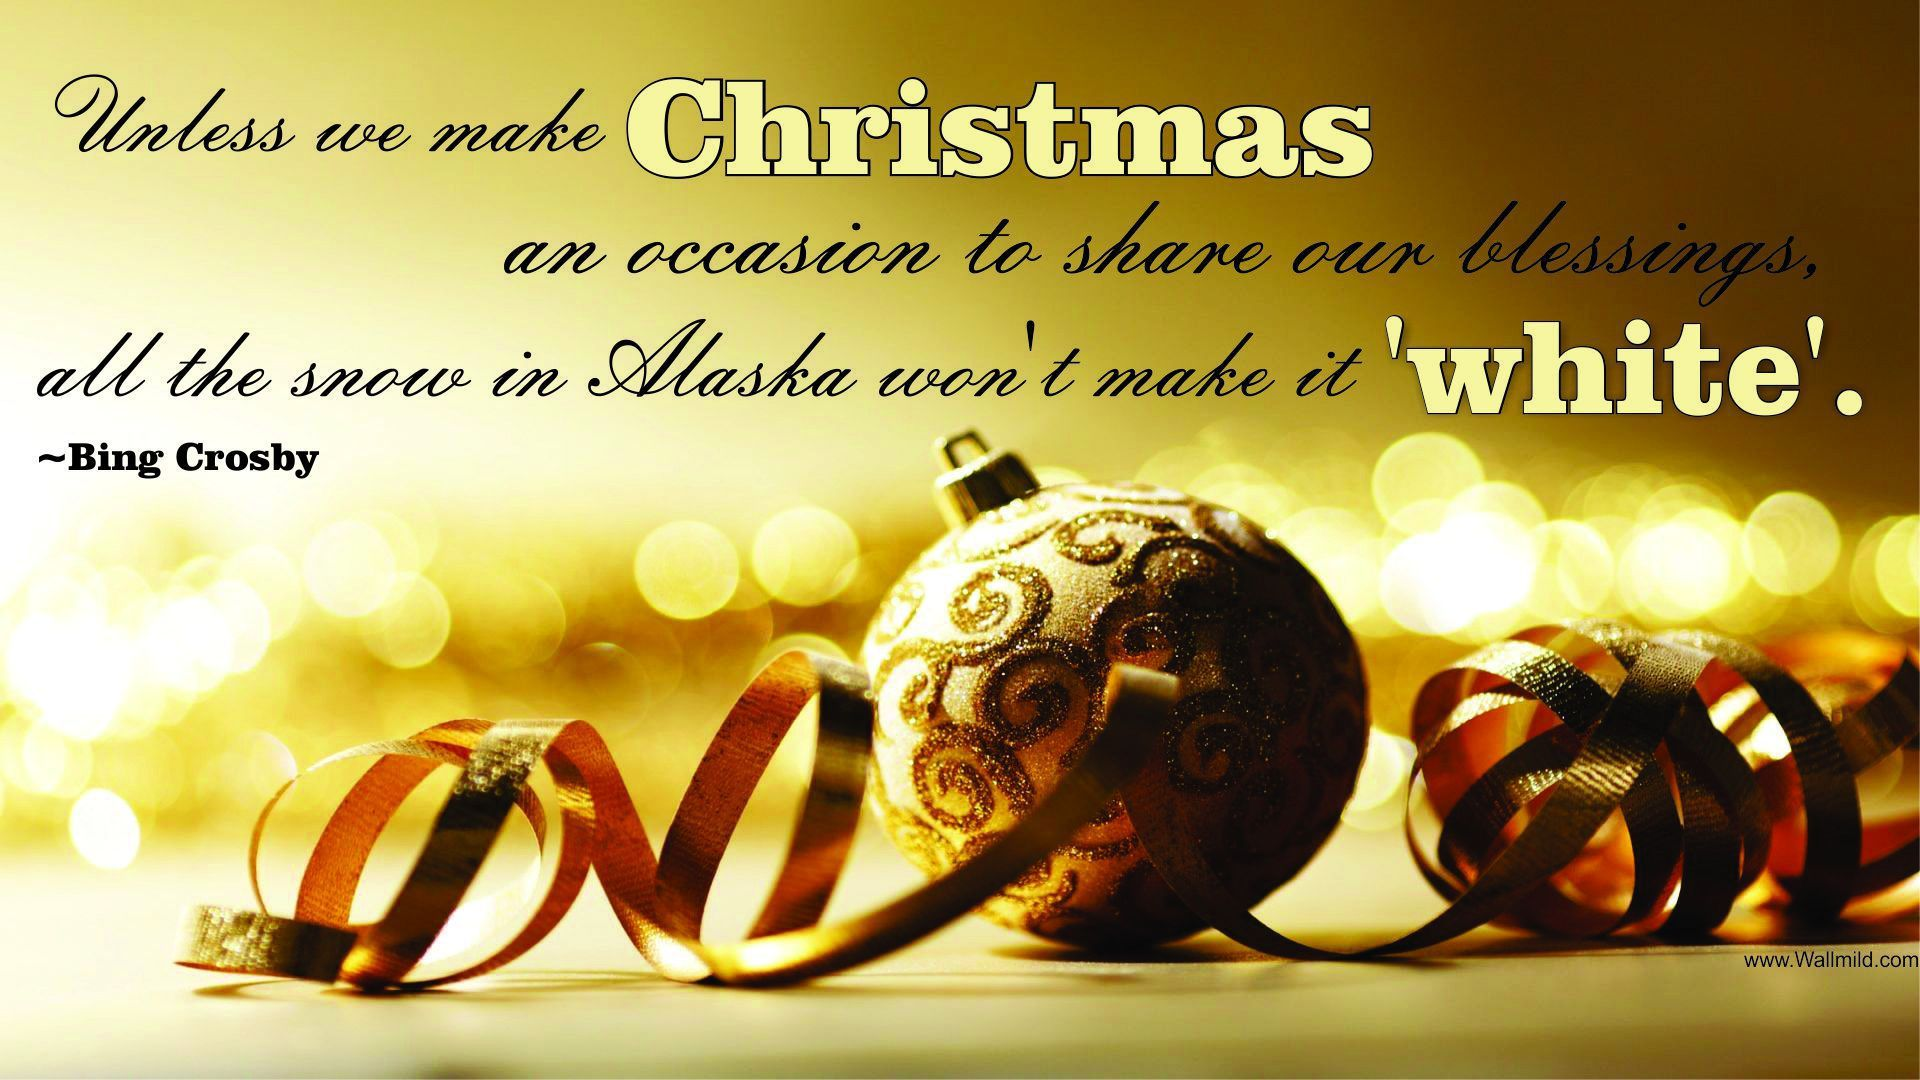 Christmas Quotes Images, Merry Christmas Quotes, Christmas Wallpaper Hd, Merry  Christmas Wallpapers, Cute Quotes, Facebook Cover Pics, Merry Christmas ...